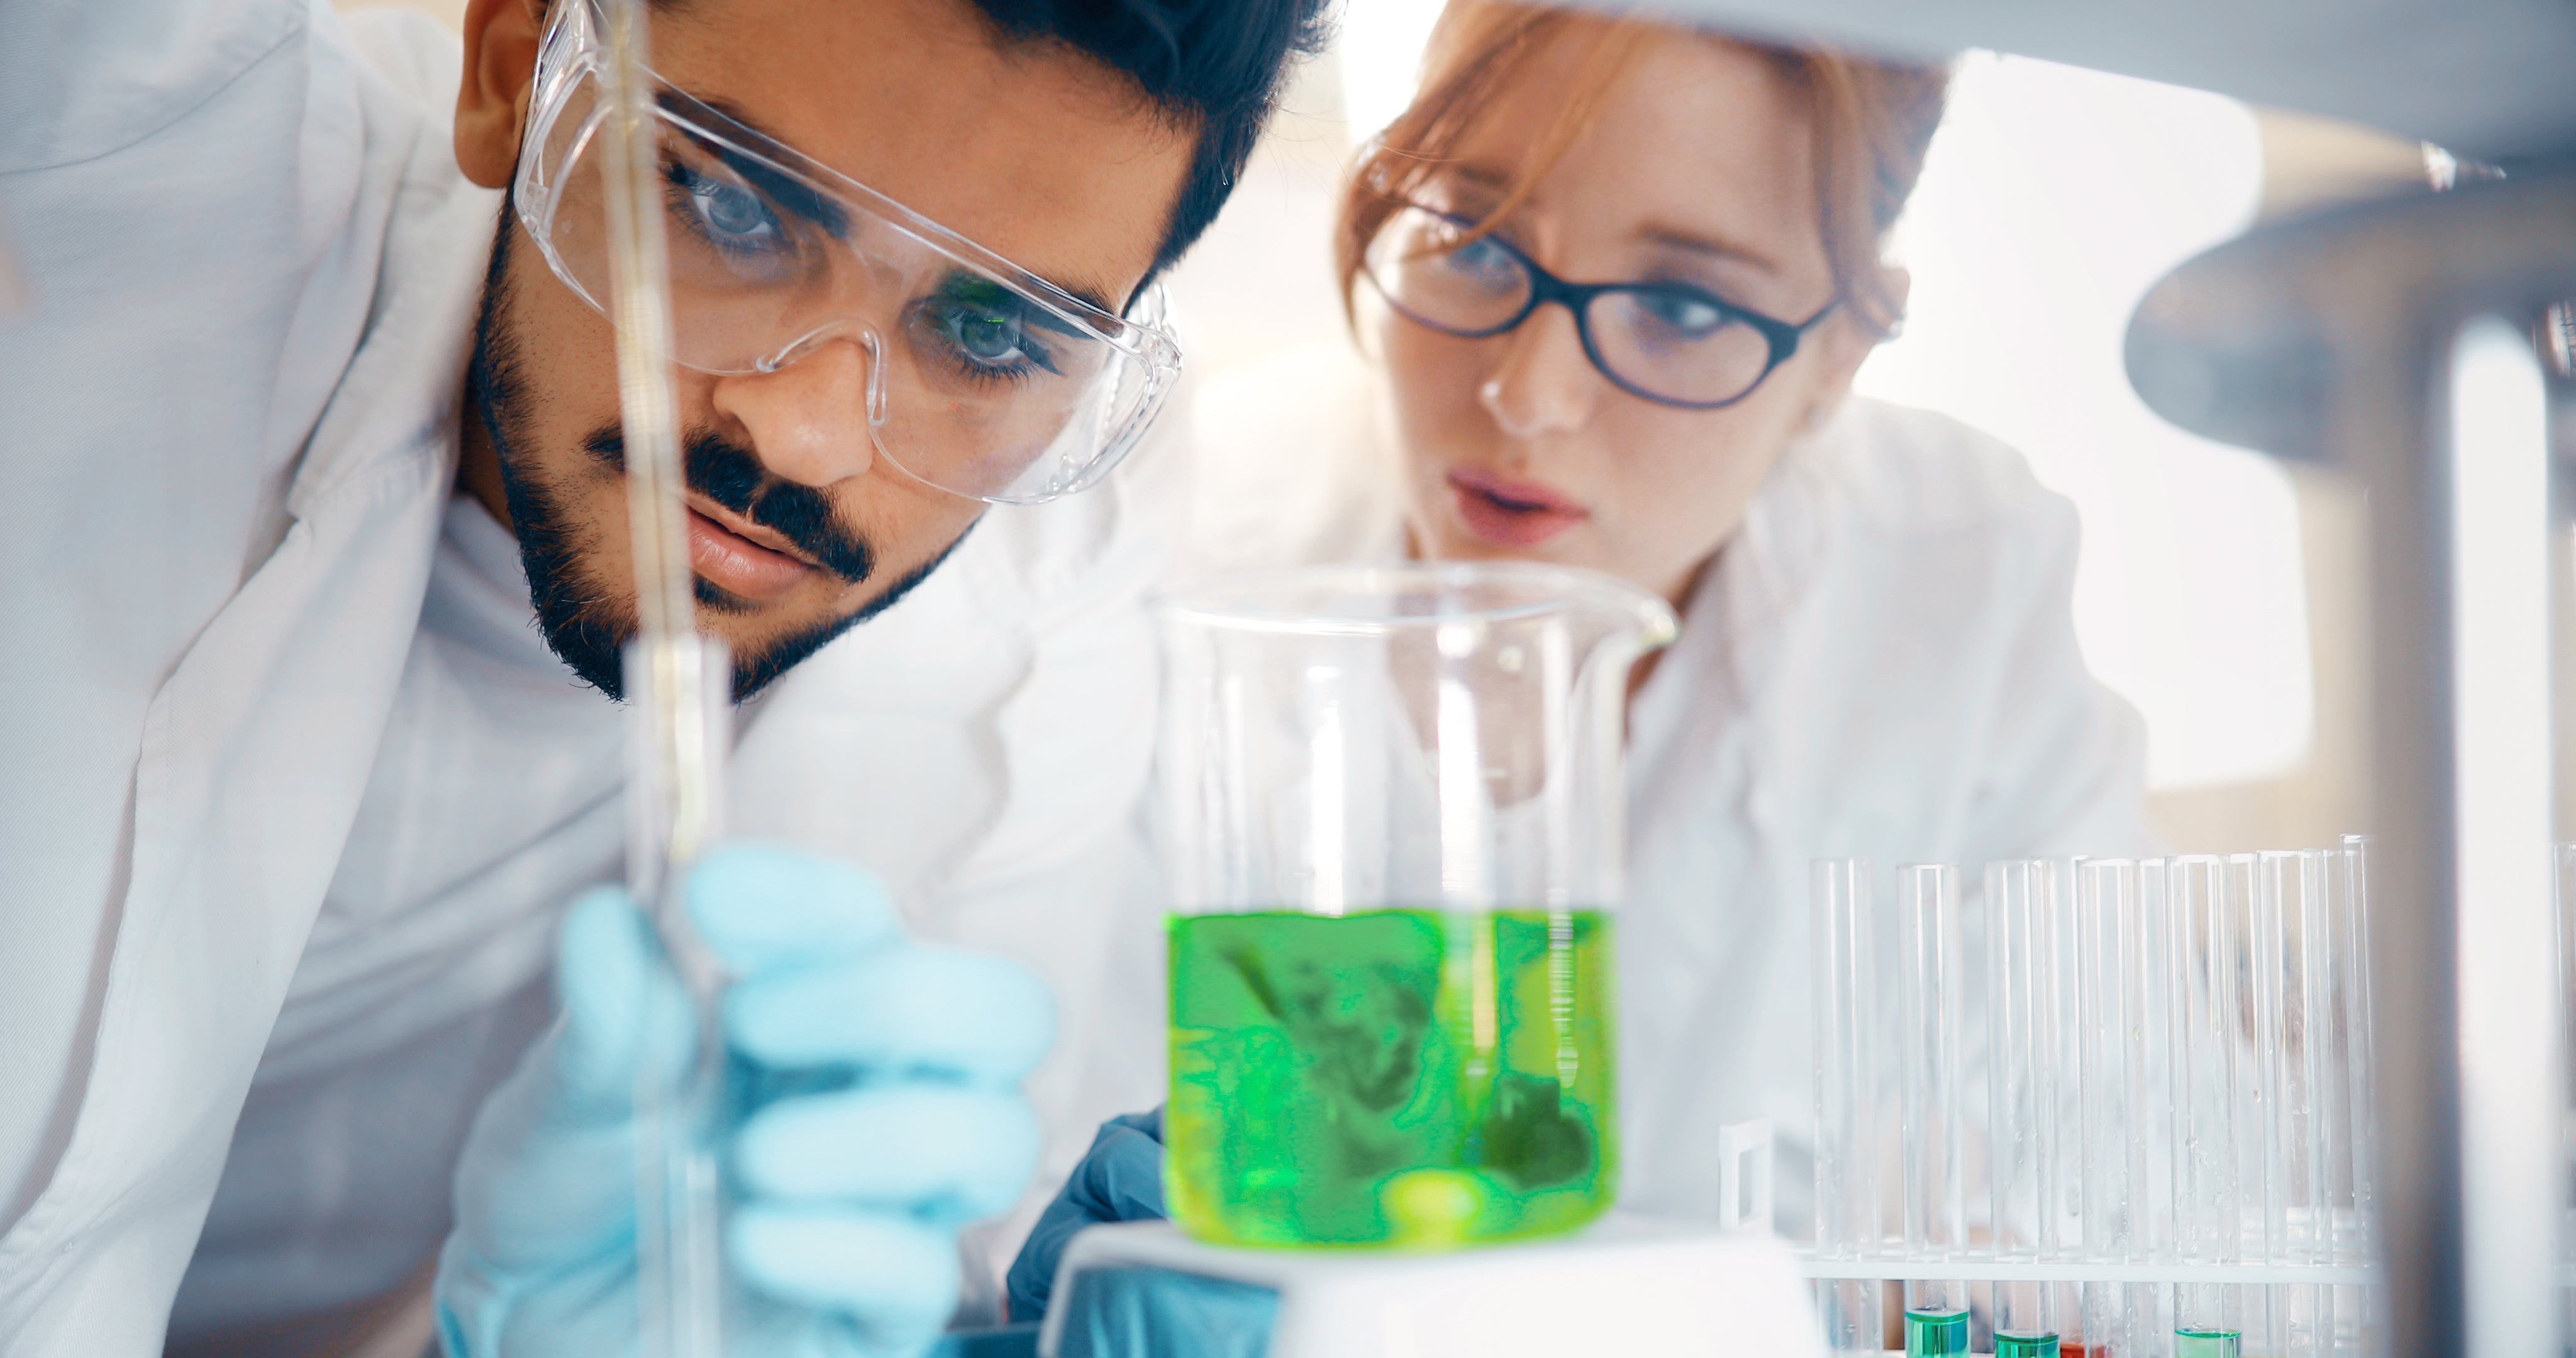 Scientists in lab looking at a beaker with green fluid